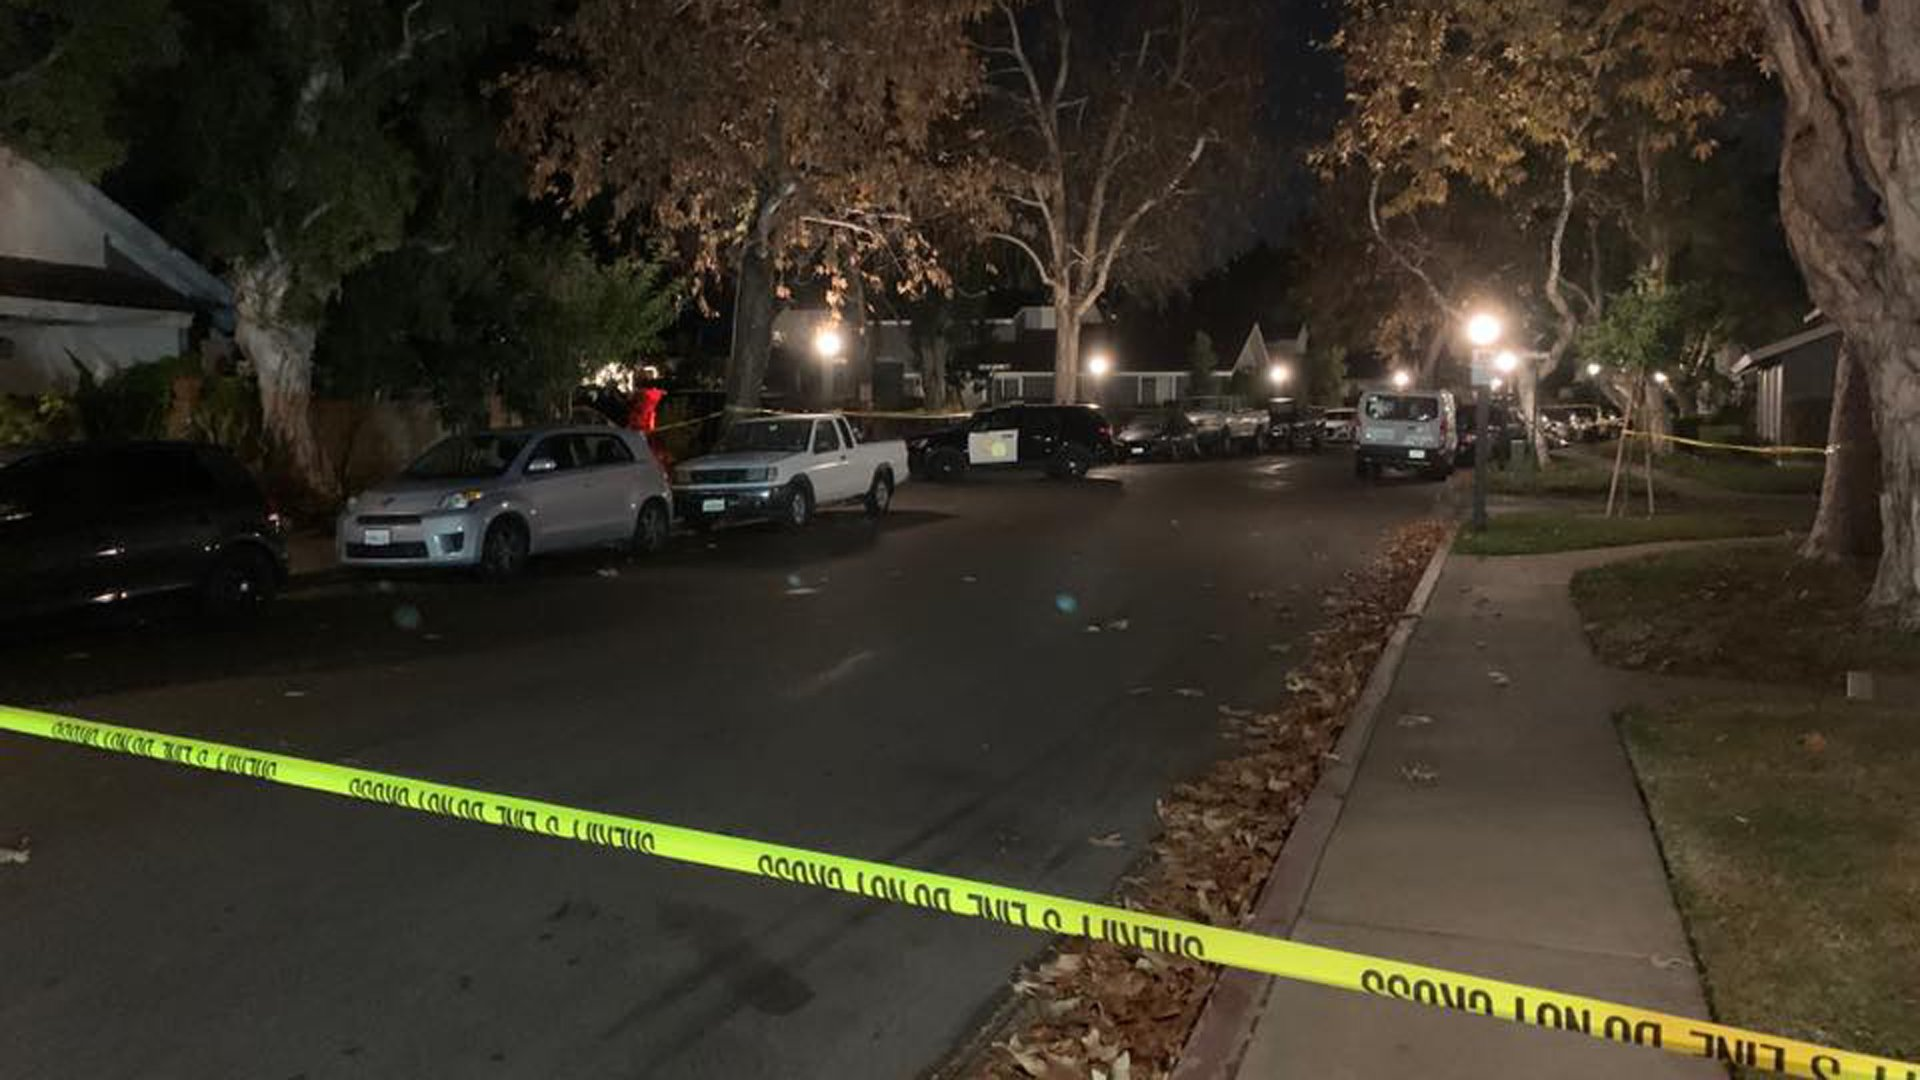 The Orange County Sheriff's Department released this photo of the street in San Juan Capistrano where a woman was found stabbed to death inside a home on Jan. 14, 2020.